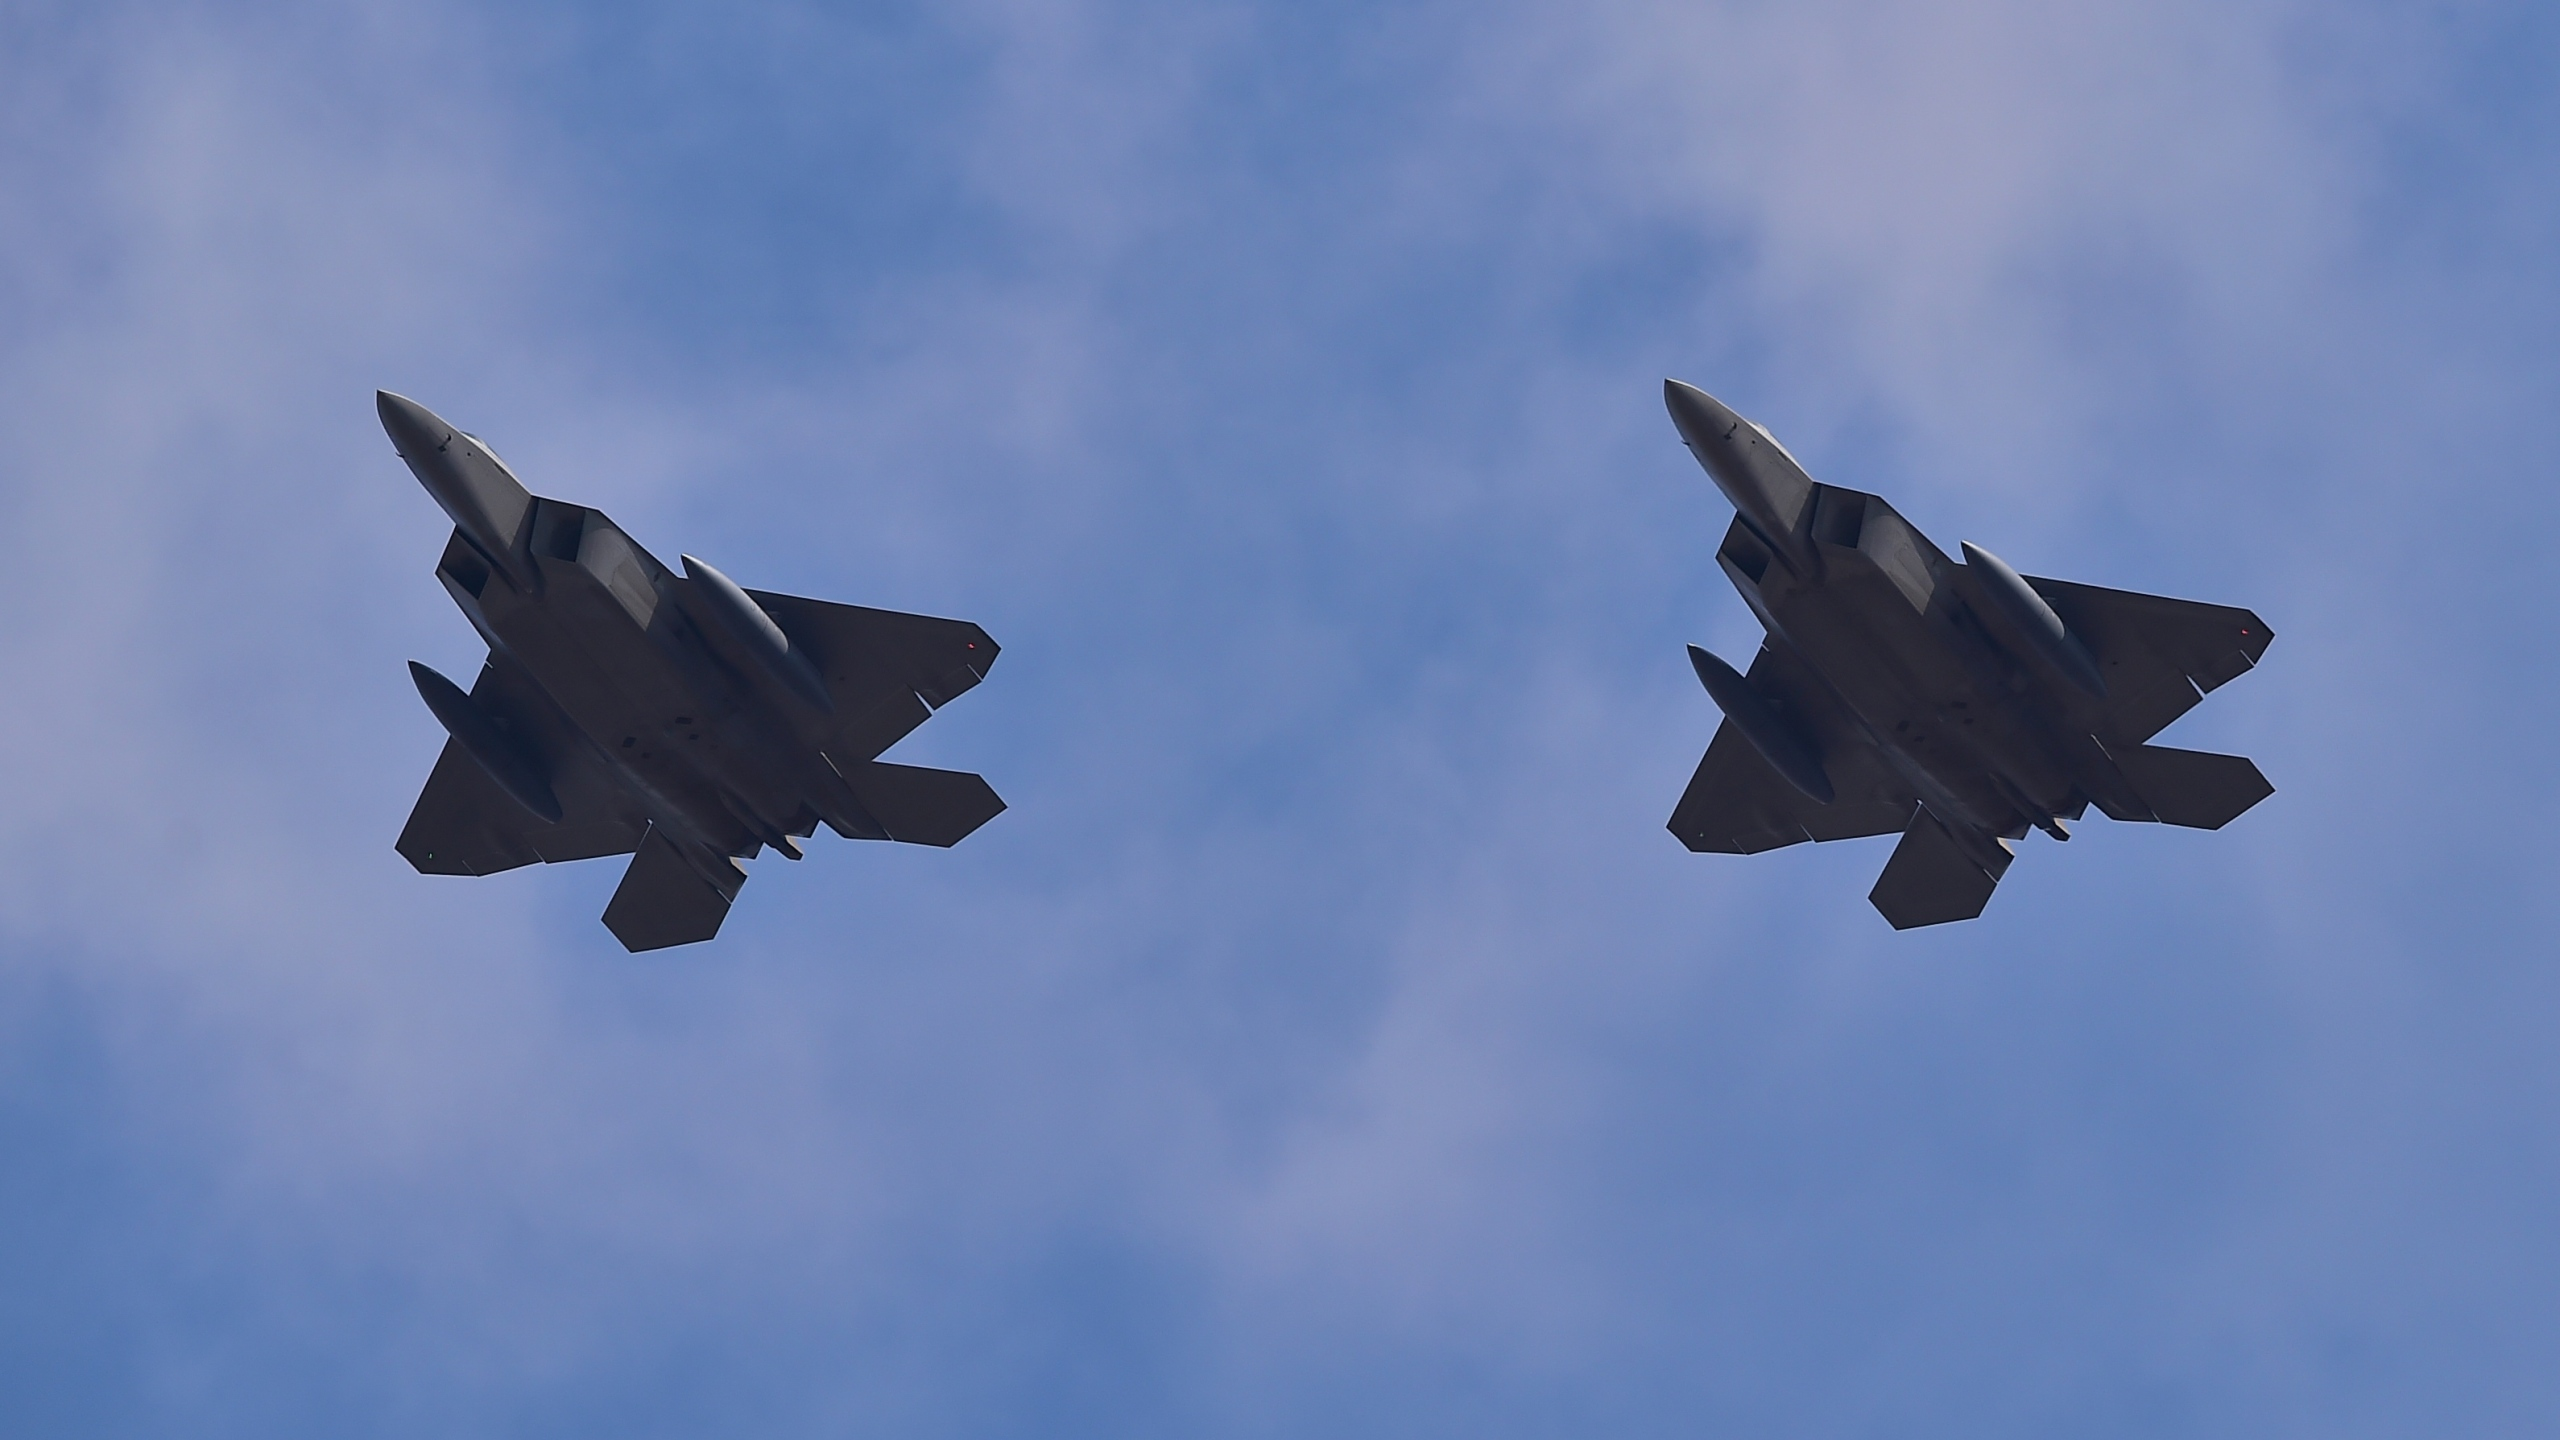 US F-22 stealth fighters fly over Osan Air Base in Pyeongtaek, south of Seoul, on February 17, 2016. (Credit: JUNG YEON-JE/AFP/Getty Images)